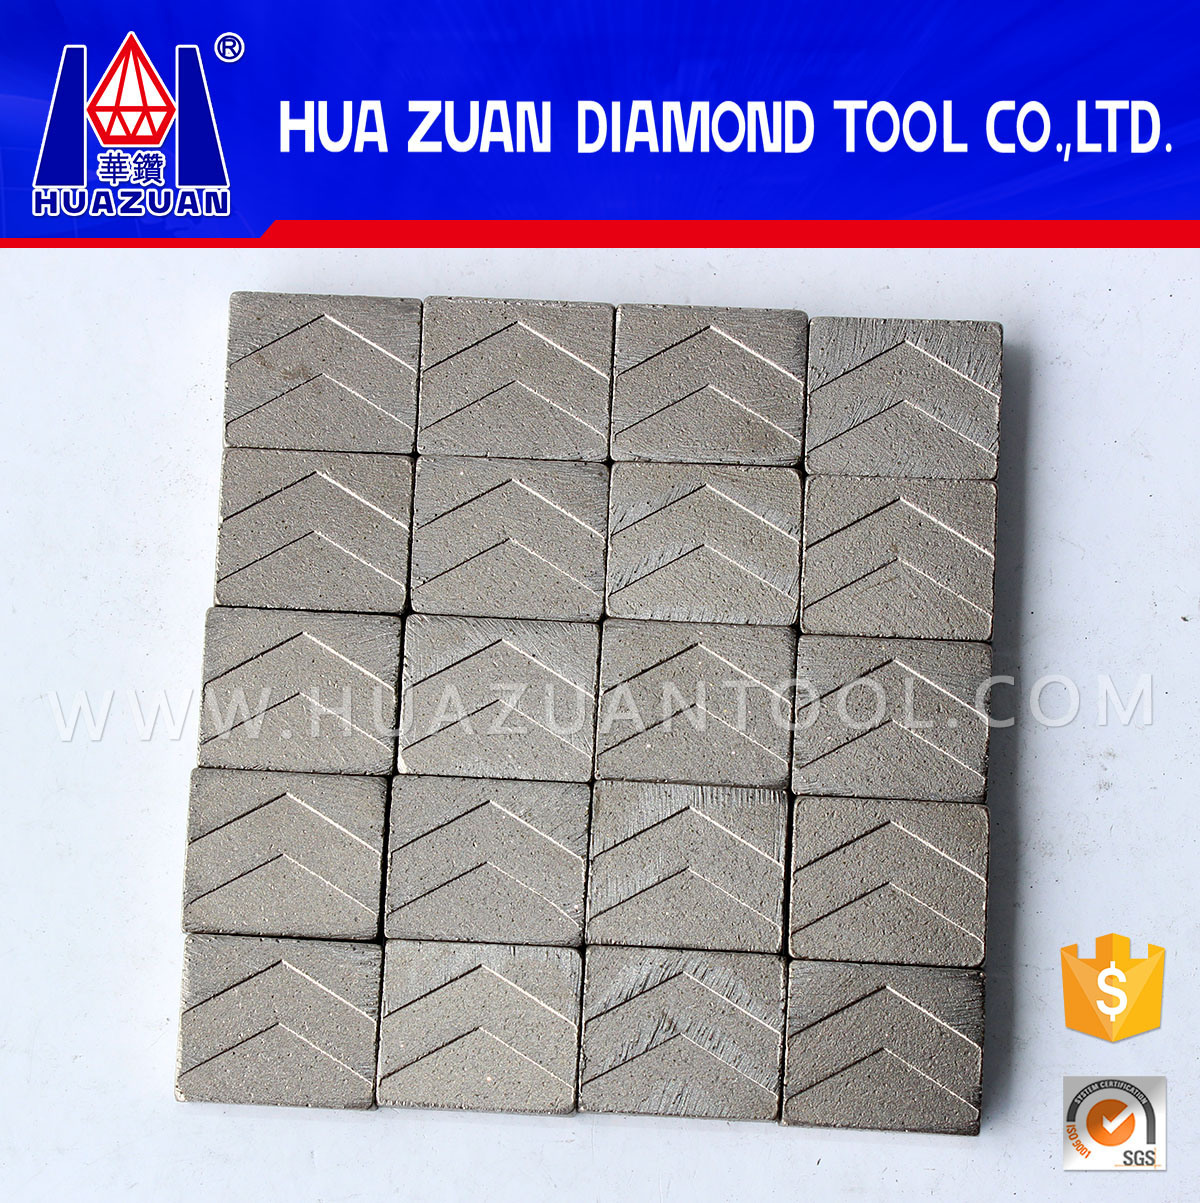 for Cutting Granite 1600mm Saw Blade Perfect Diamond Segment